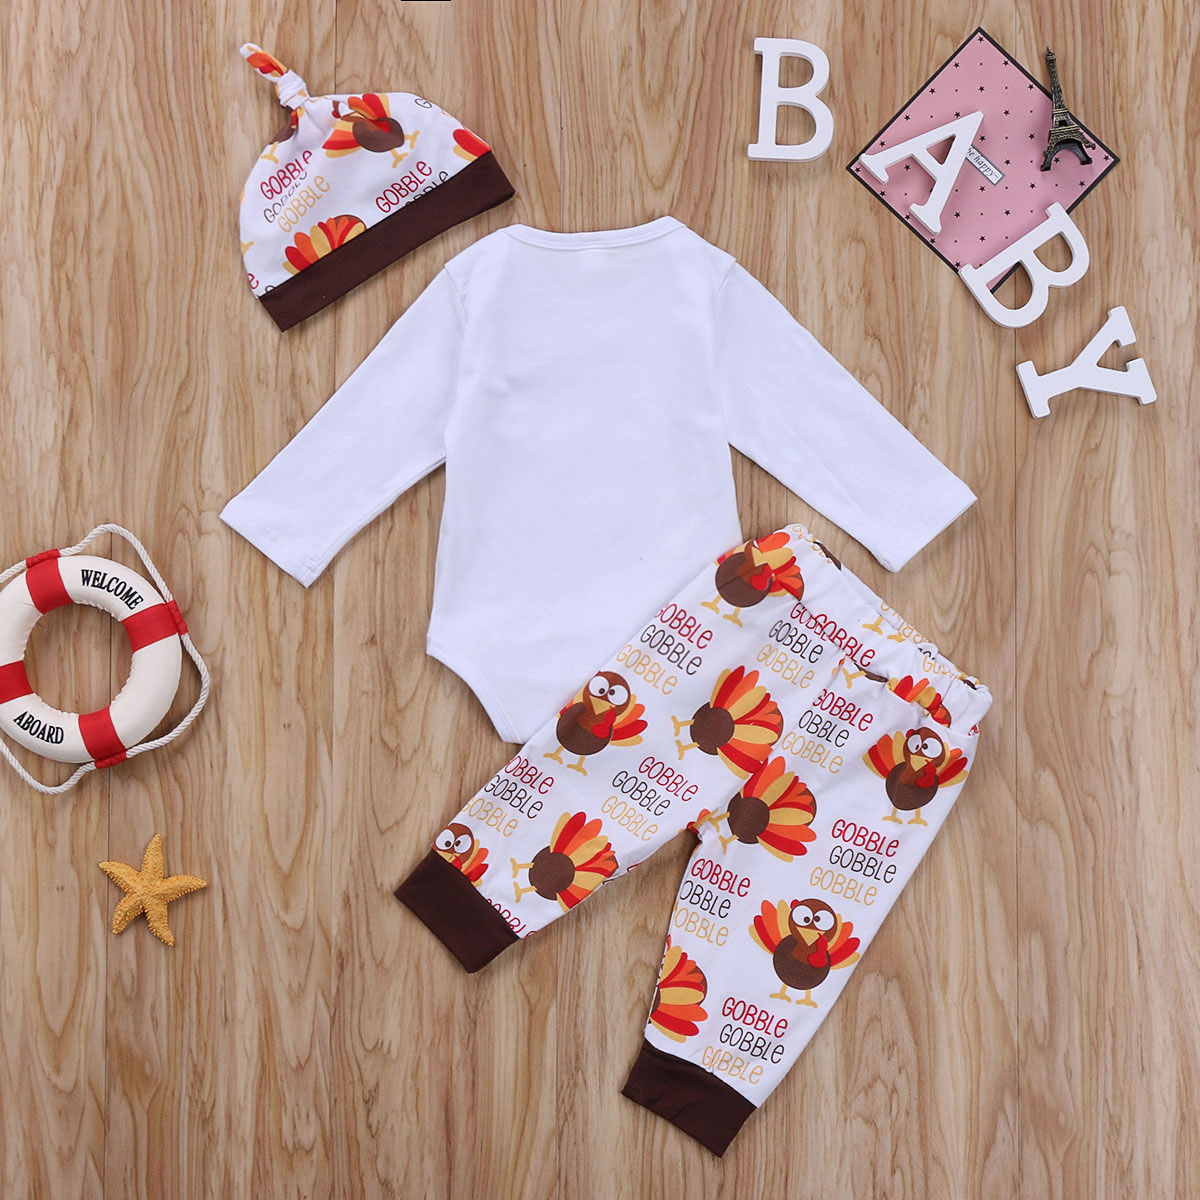 Us 5 65 10 Off Thanksgiving Day Newborn Baby Boy Girl Clothes Letter Romper Bodysuit Turkey Print Pants Outfits Festival Baby Clothes Gift In